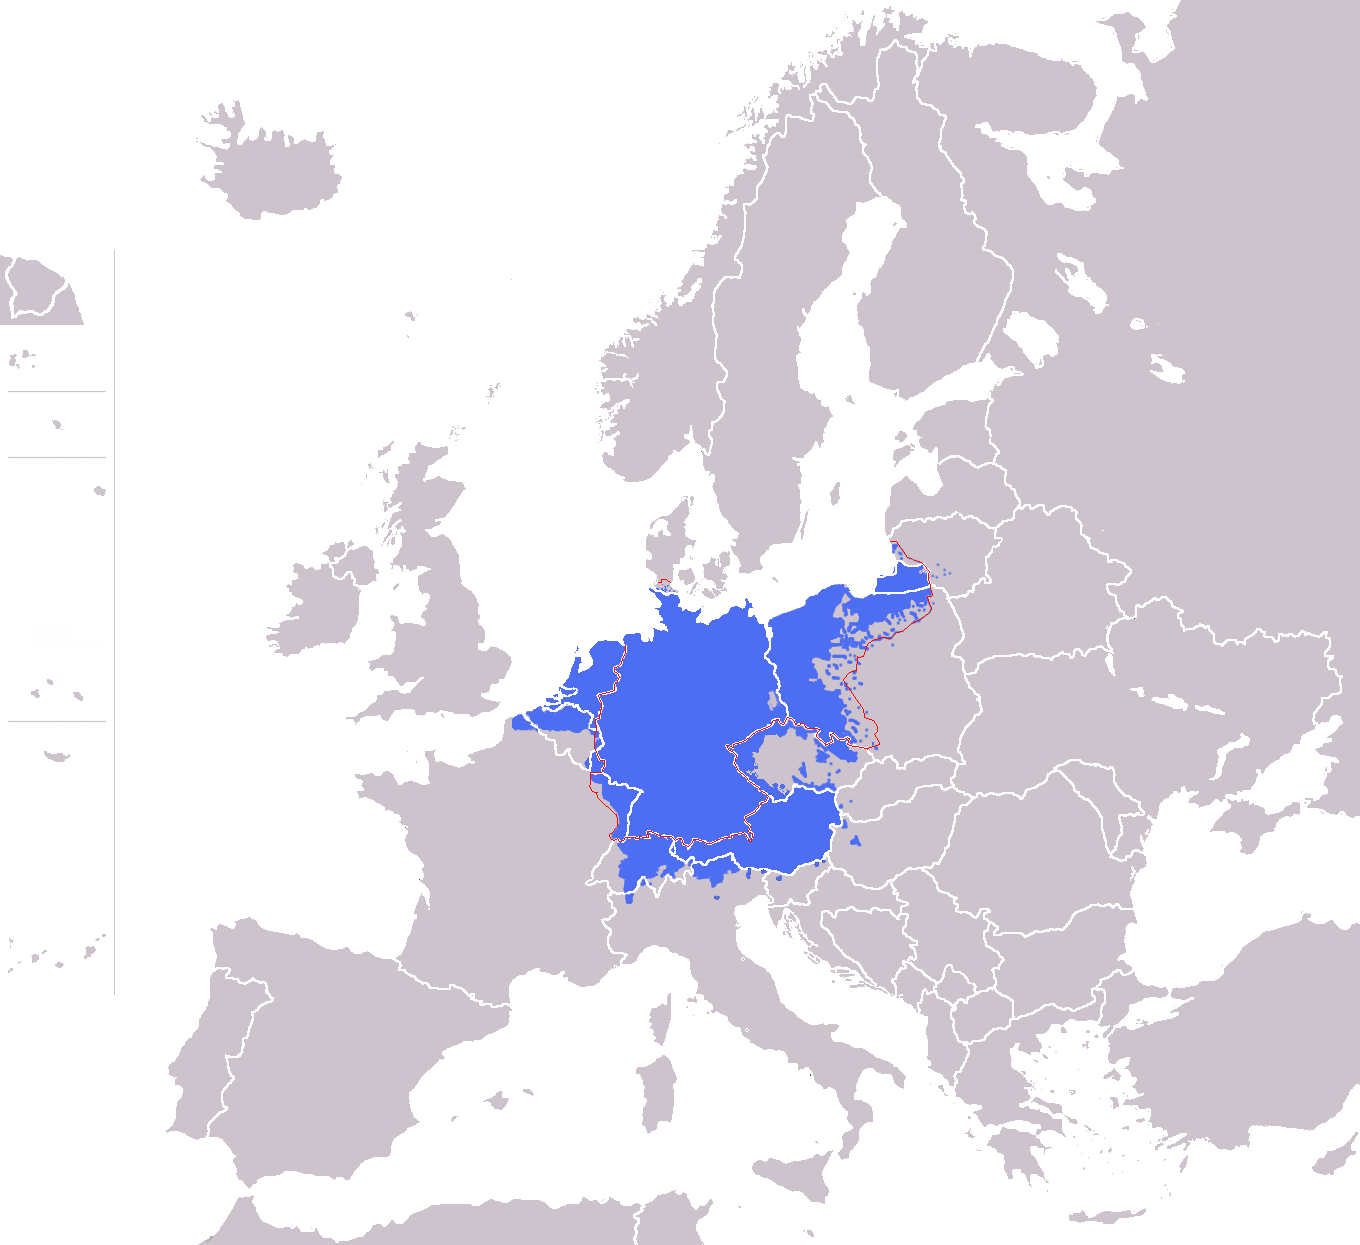 create maps free with File 01europe Blank Map With Germany Region on Londonchristiantour as well Bamboo furthermore Positioning Map 2 together with Persona Analysis Powerpoint Template as well Watch.